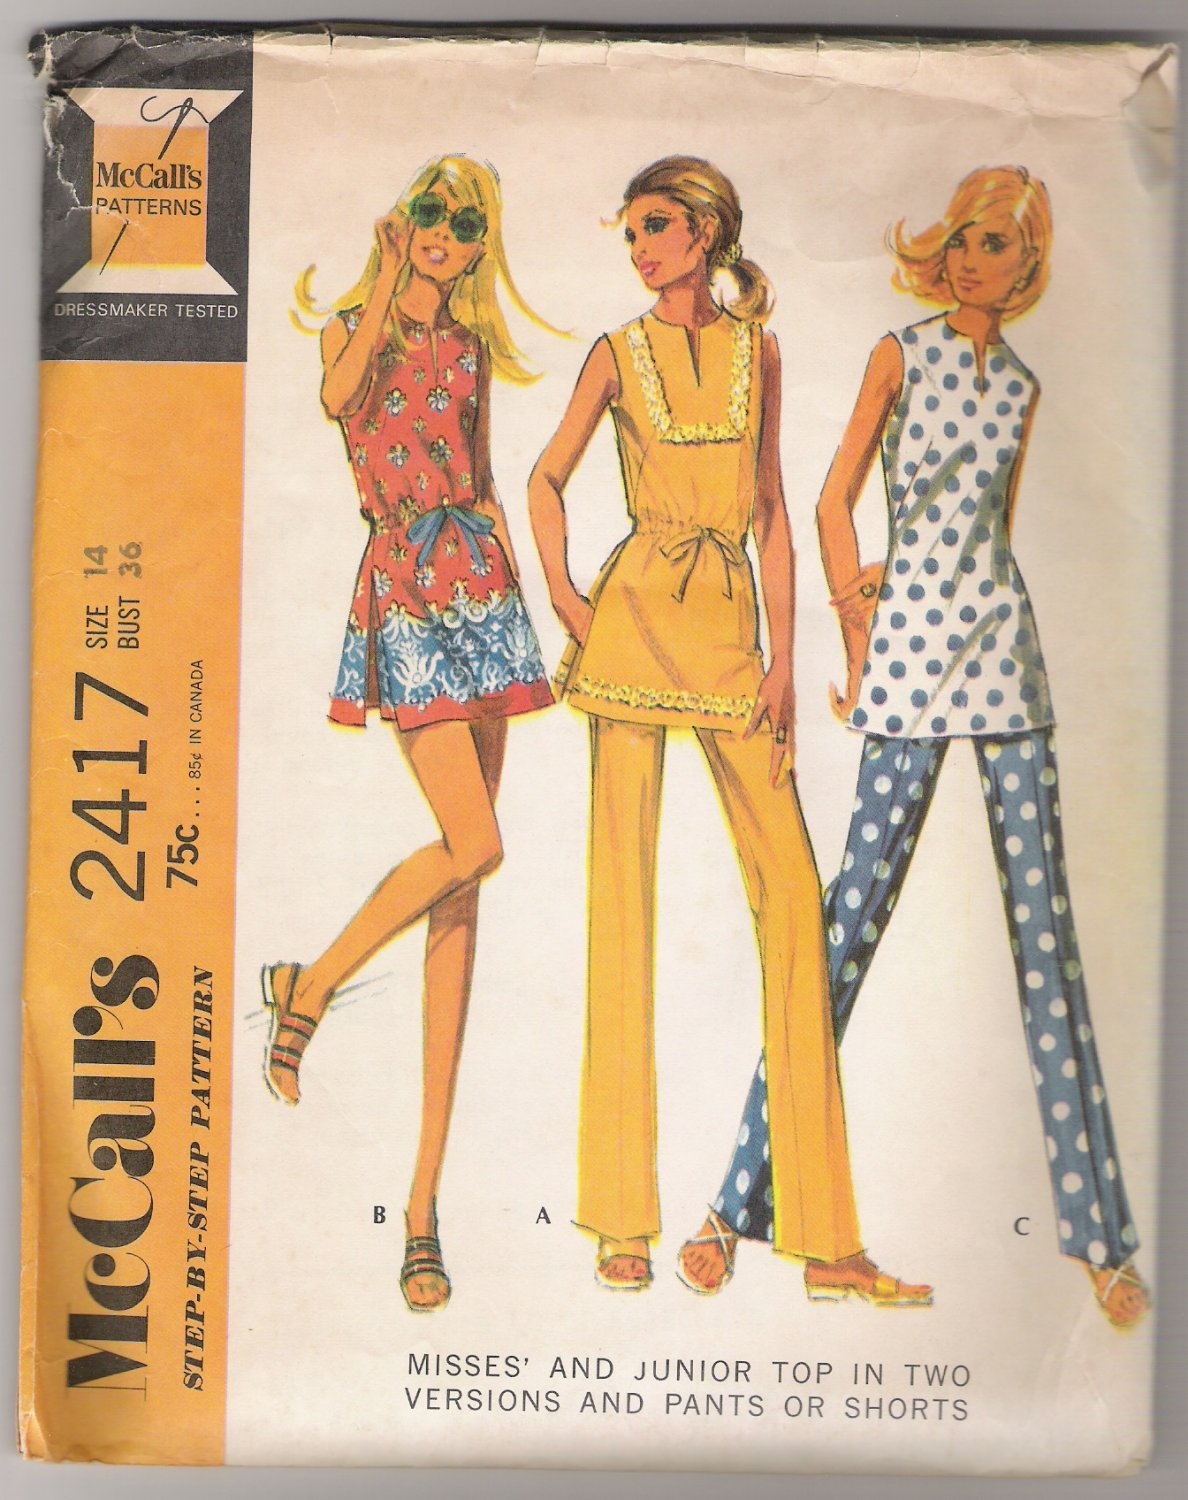 Misses' and Junior Top in Two Versions and Pants or Shorts McCall's #2417 Sewing Pattern